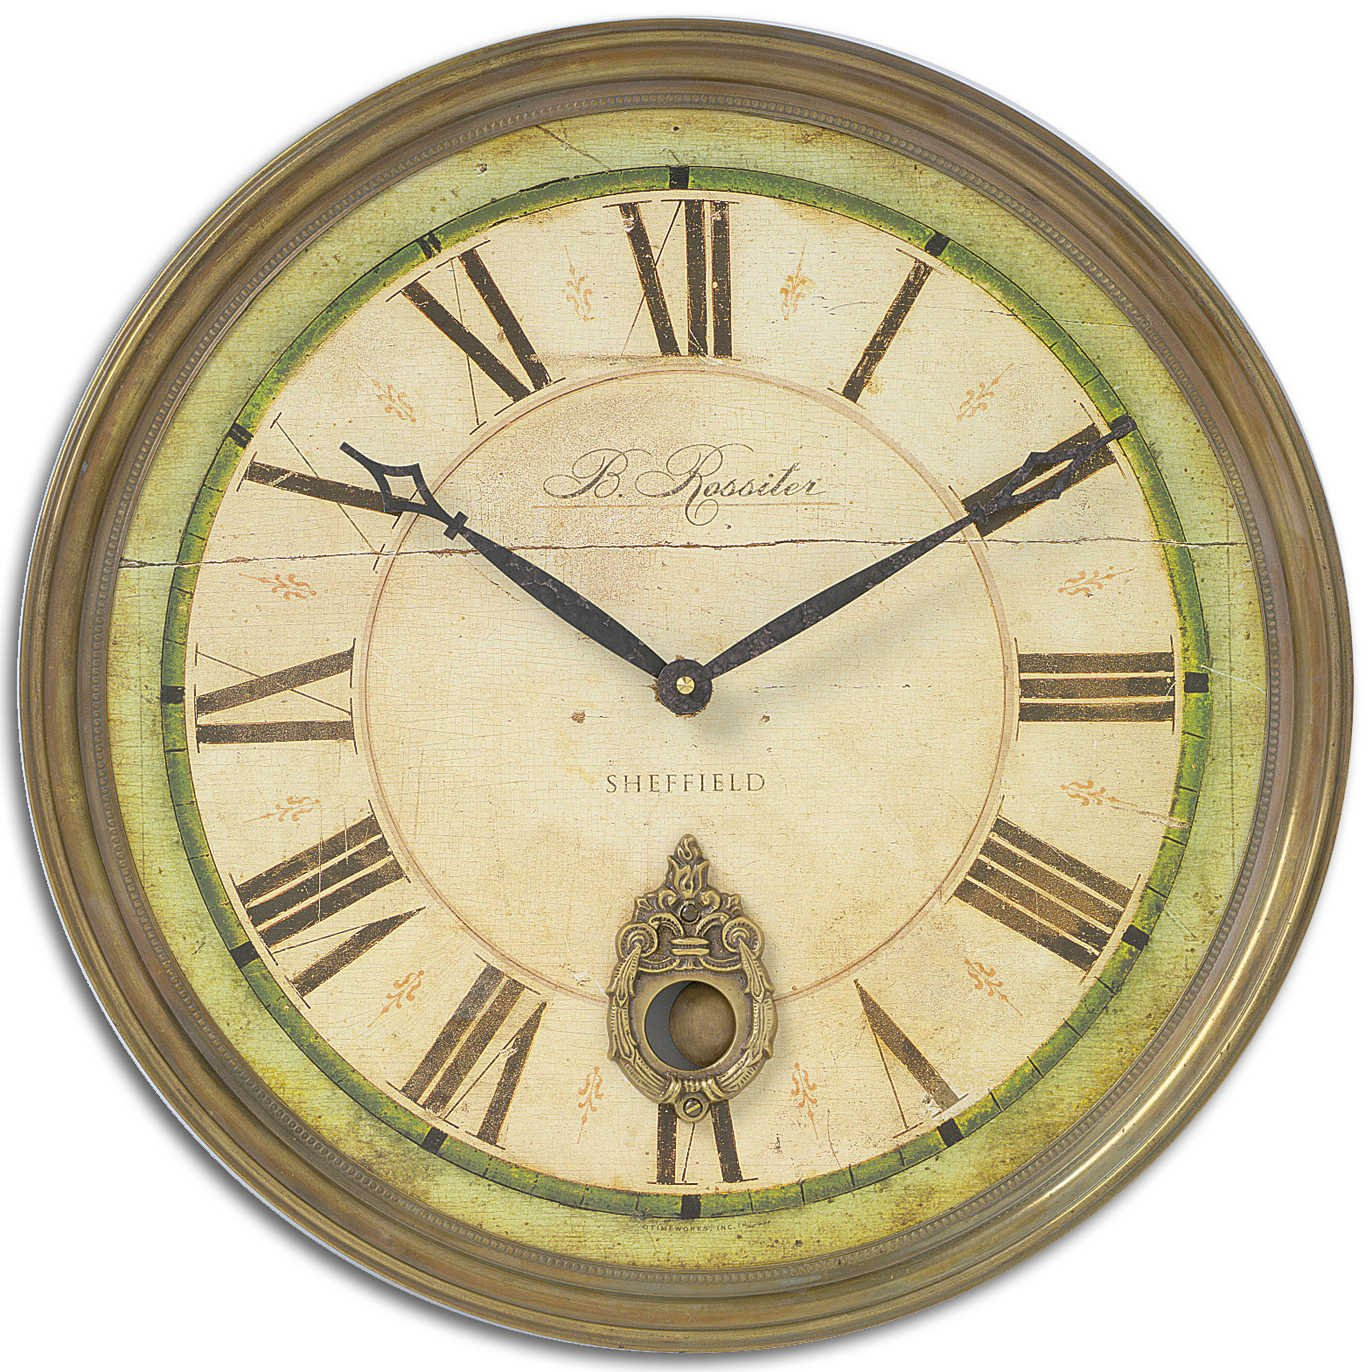 Amazon.com: Uttermost Regency B. Rossiter Wall Clock: Home & Kitchen